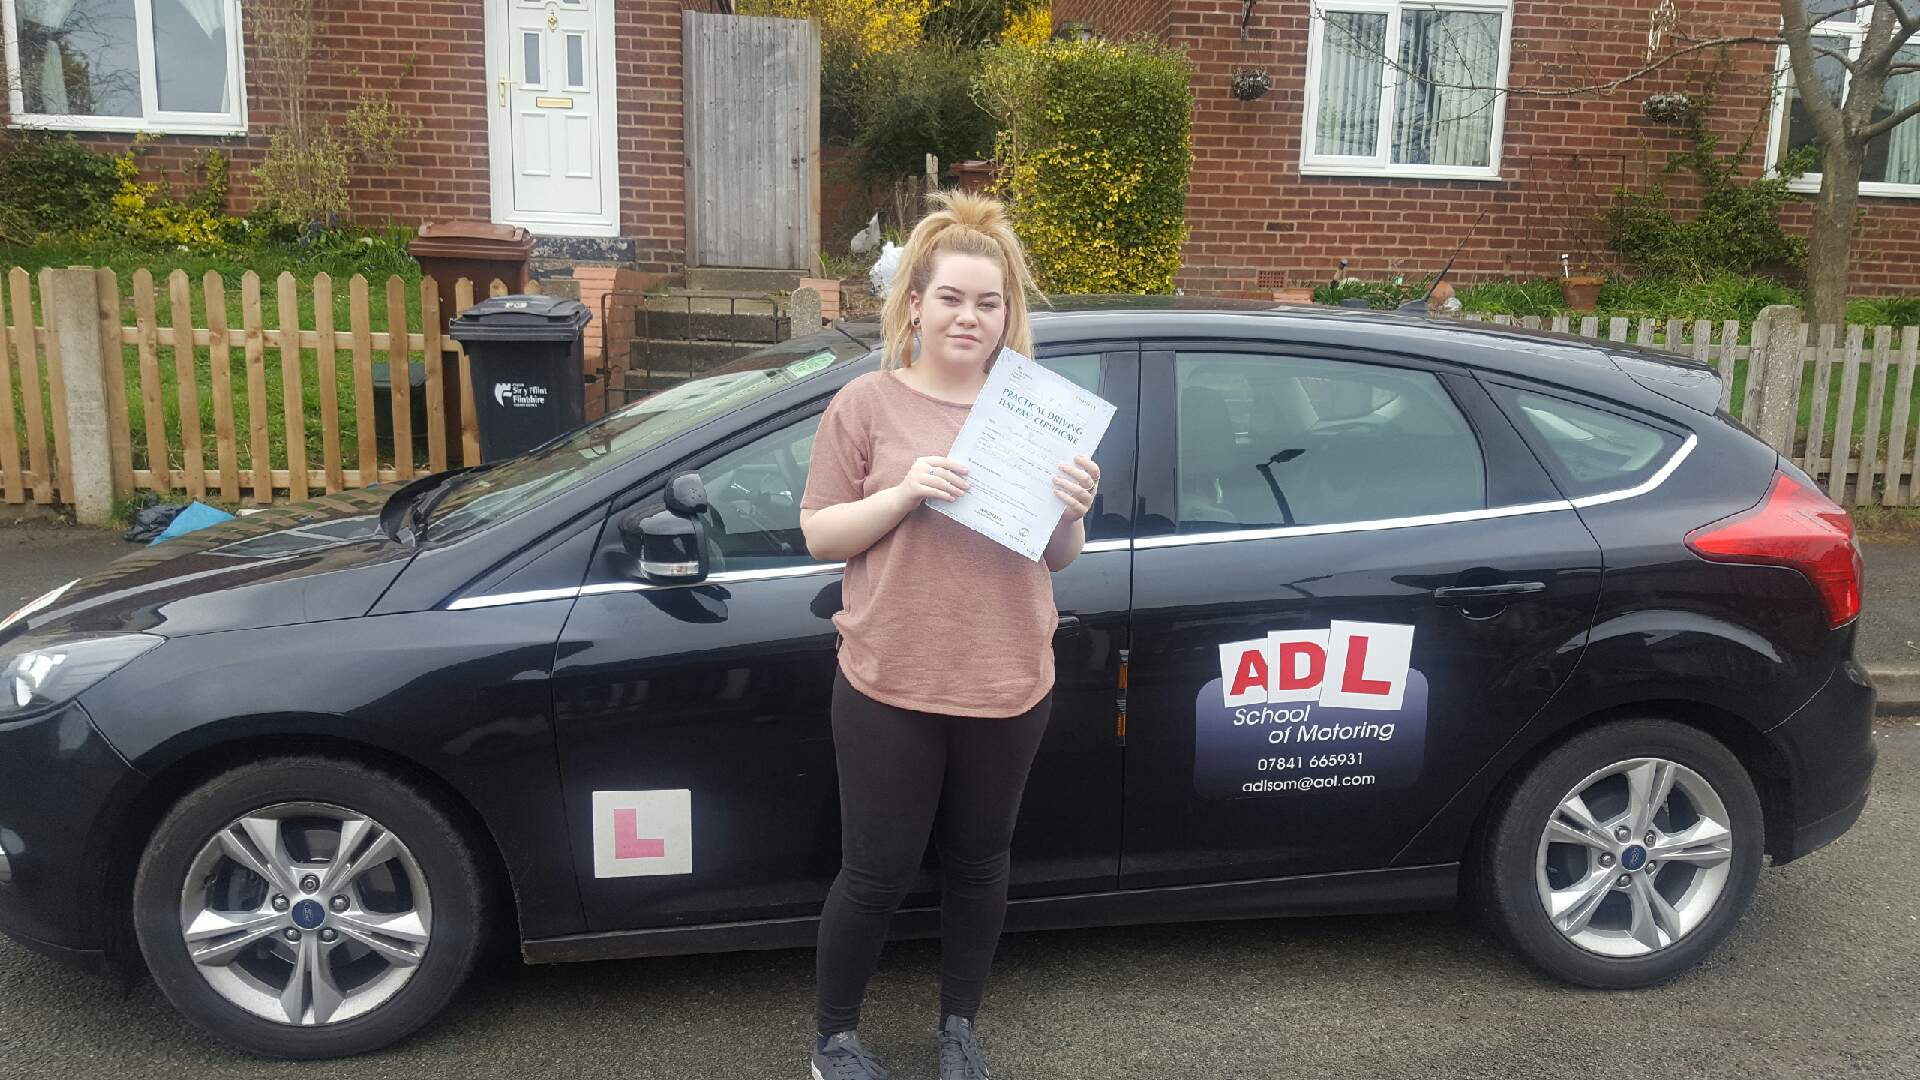 More great news from ADL SCHOOL OF MOTORING.